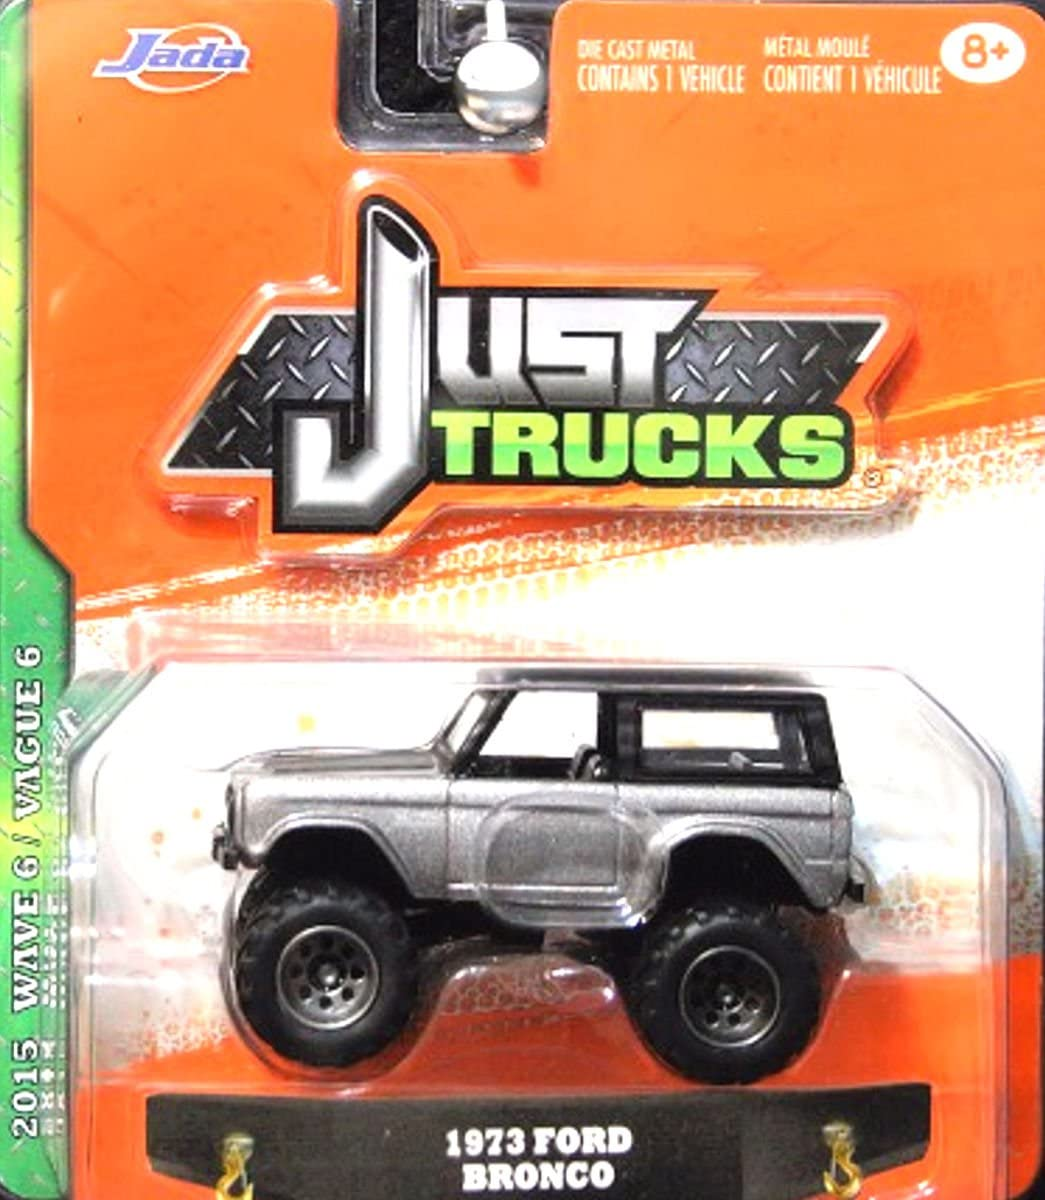 1973 73 FORD BRONCO 4X4 OFF ROAD RARE 1:64 SCALE COLLECTIBLE DIECAST MODEL CAR